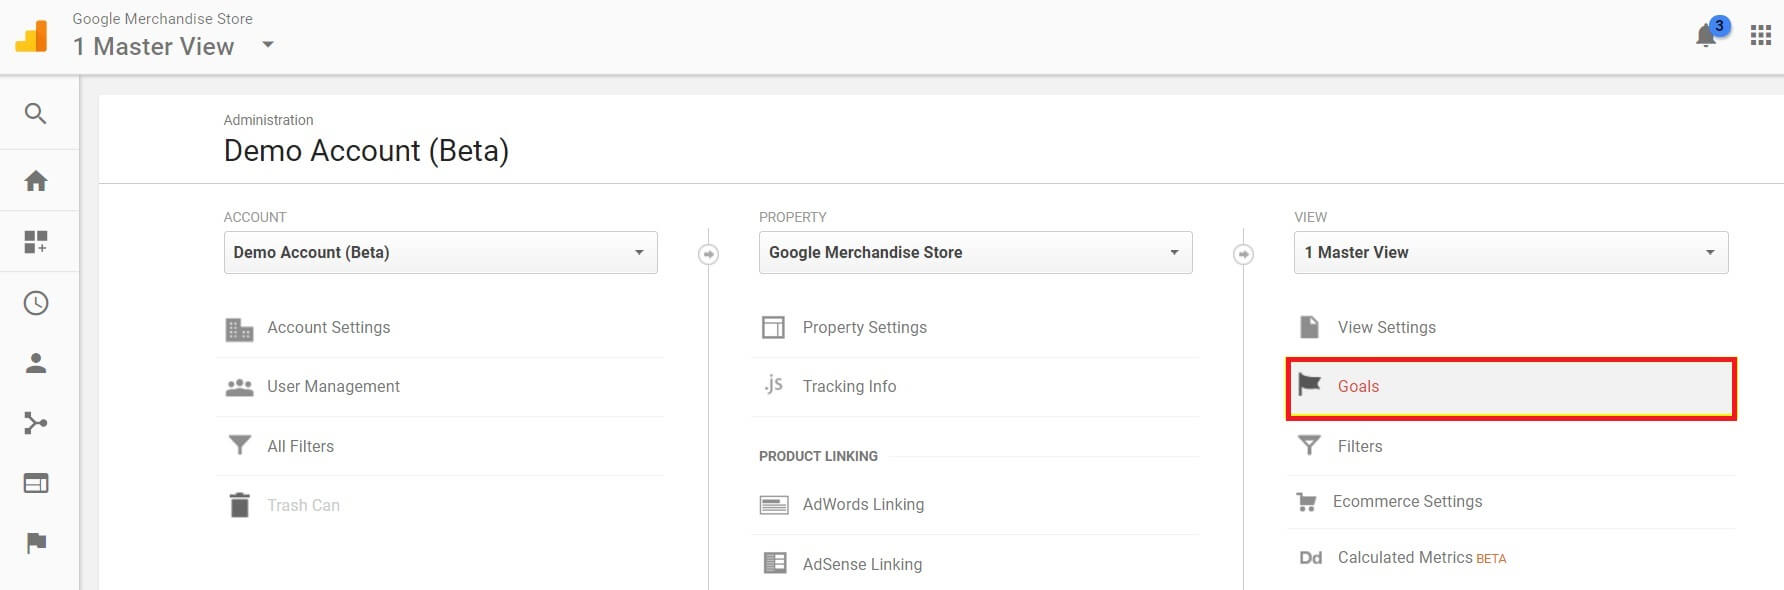 Google Analytics Goals option menu